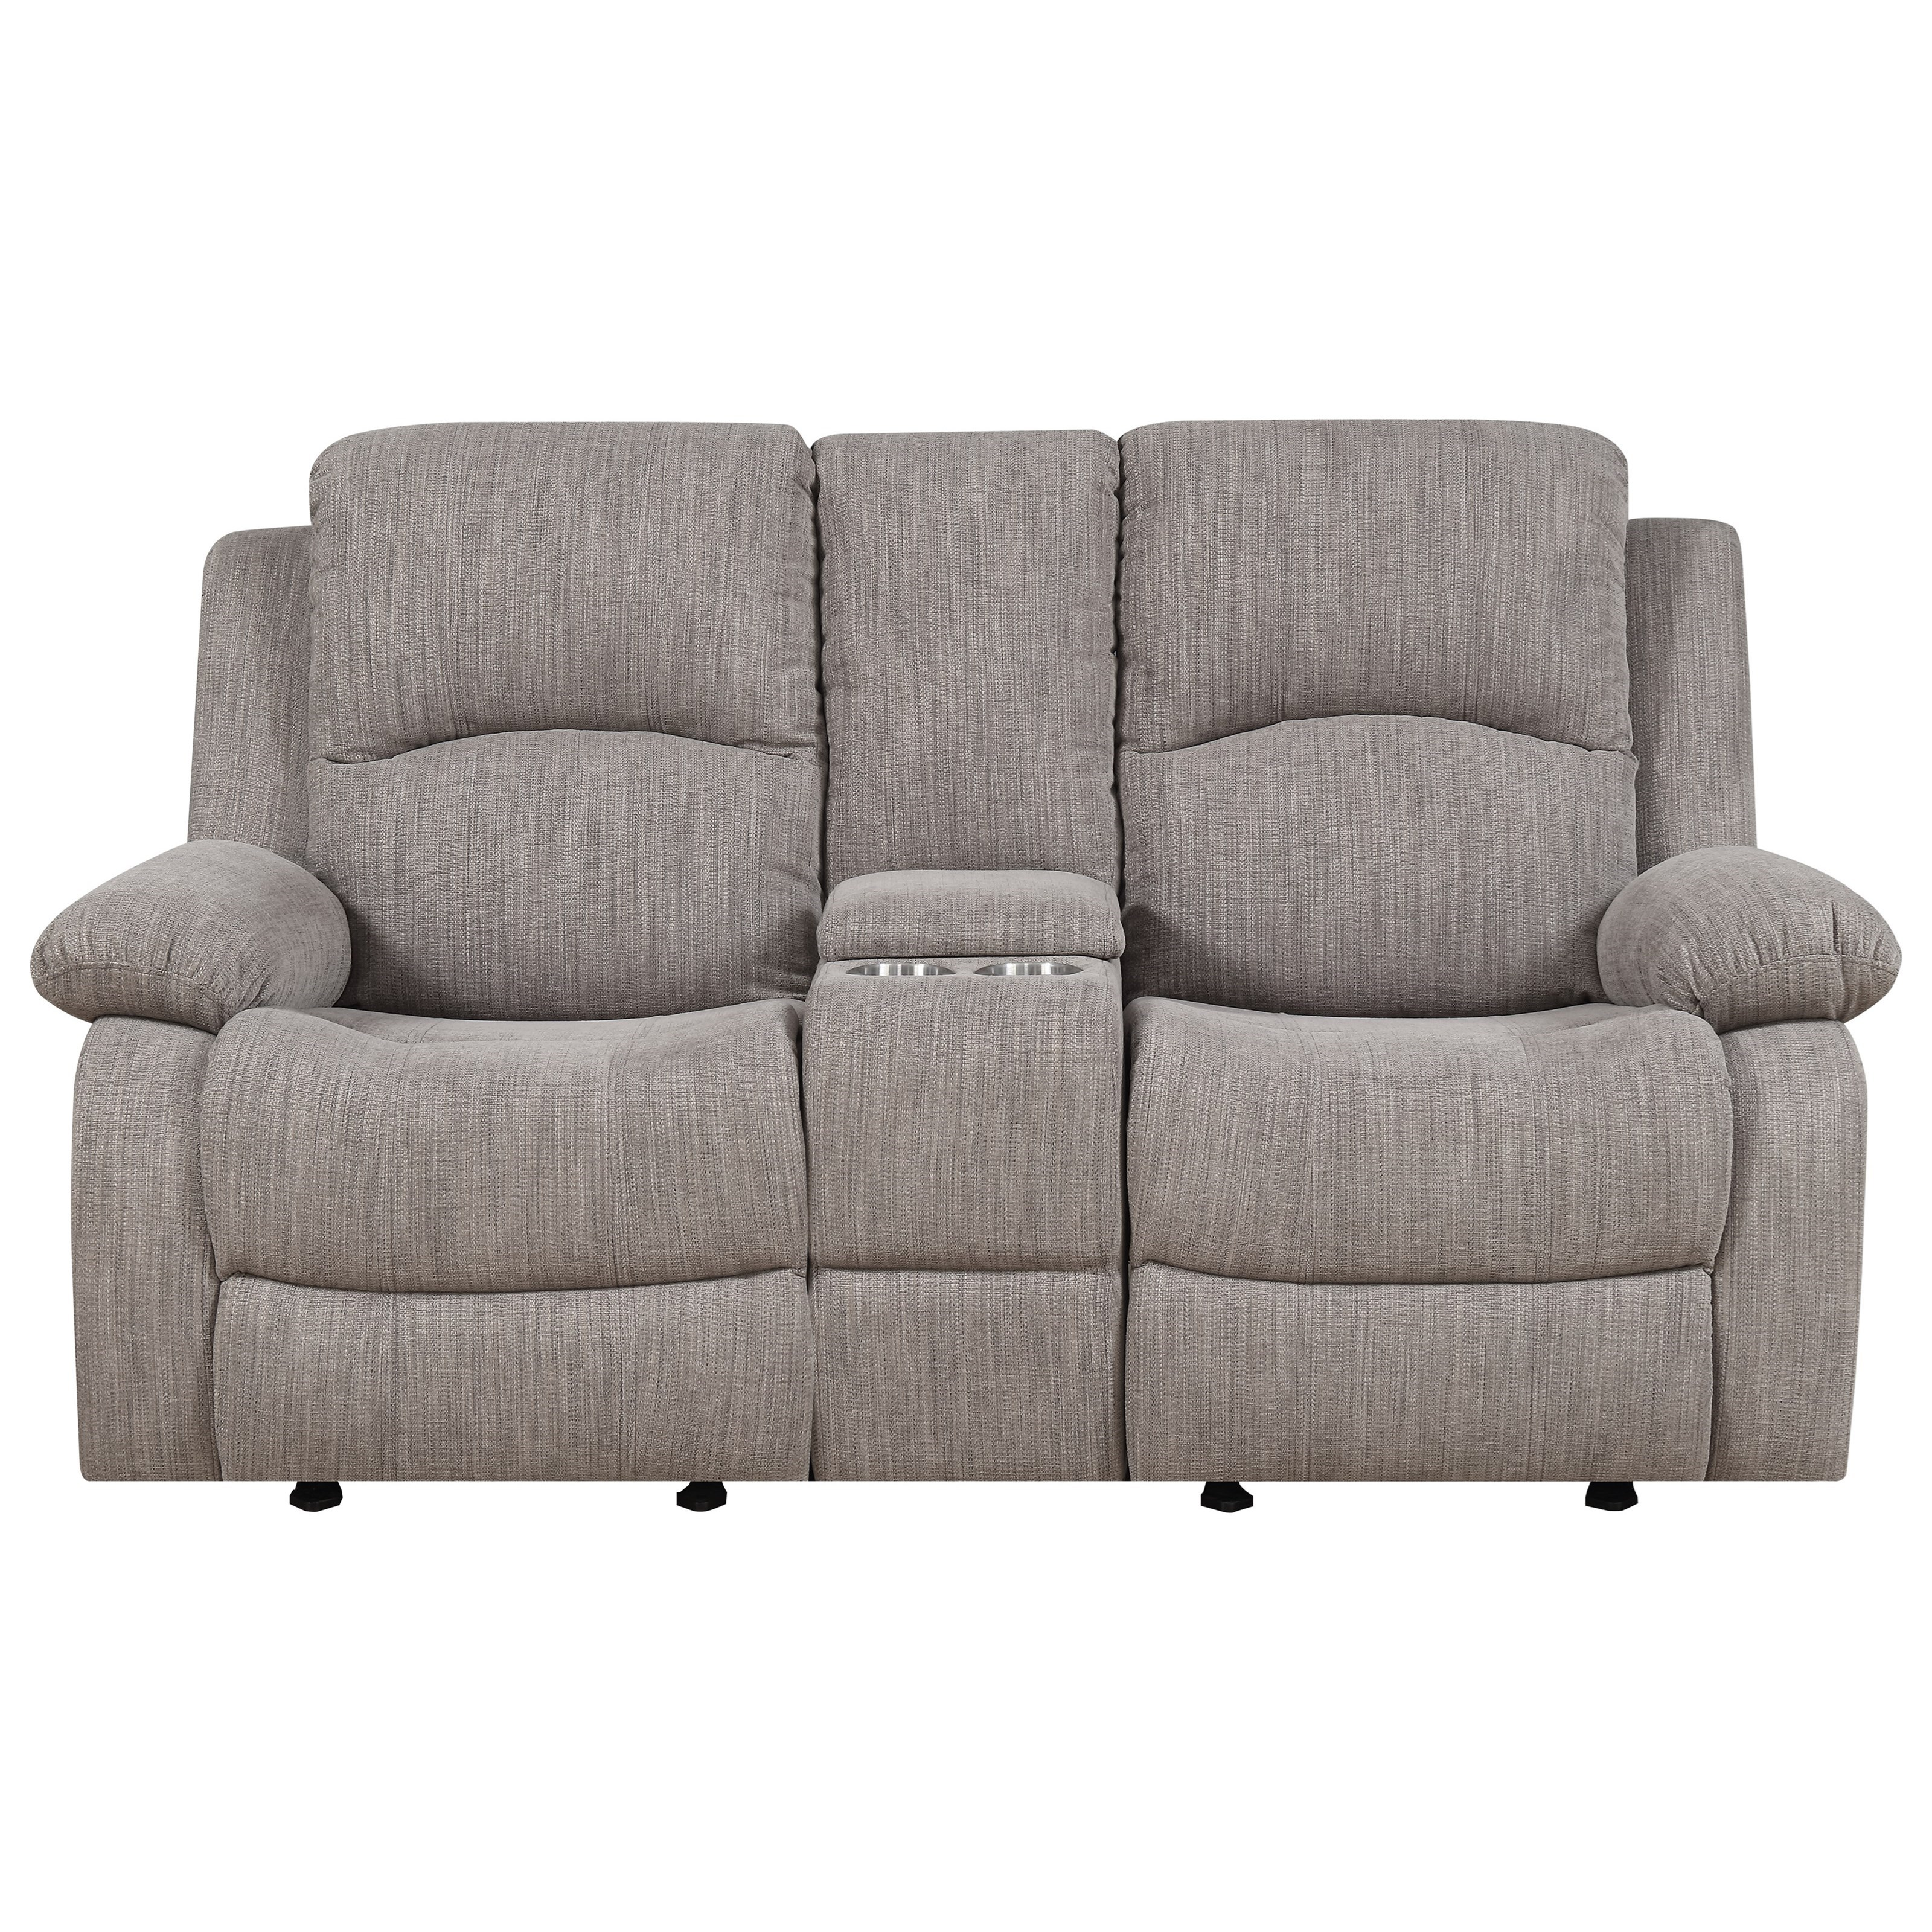 Hennessey Reclining Glider Console Loveseat at Sadler's Home Furnishings